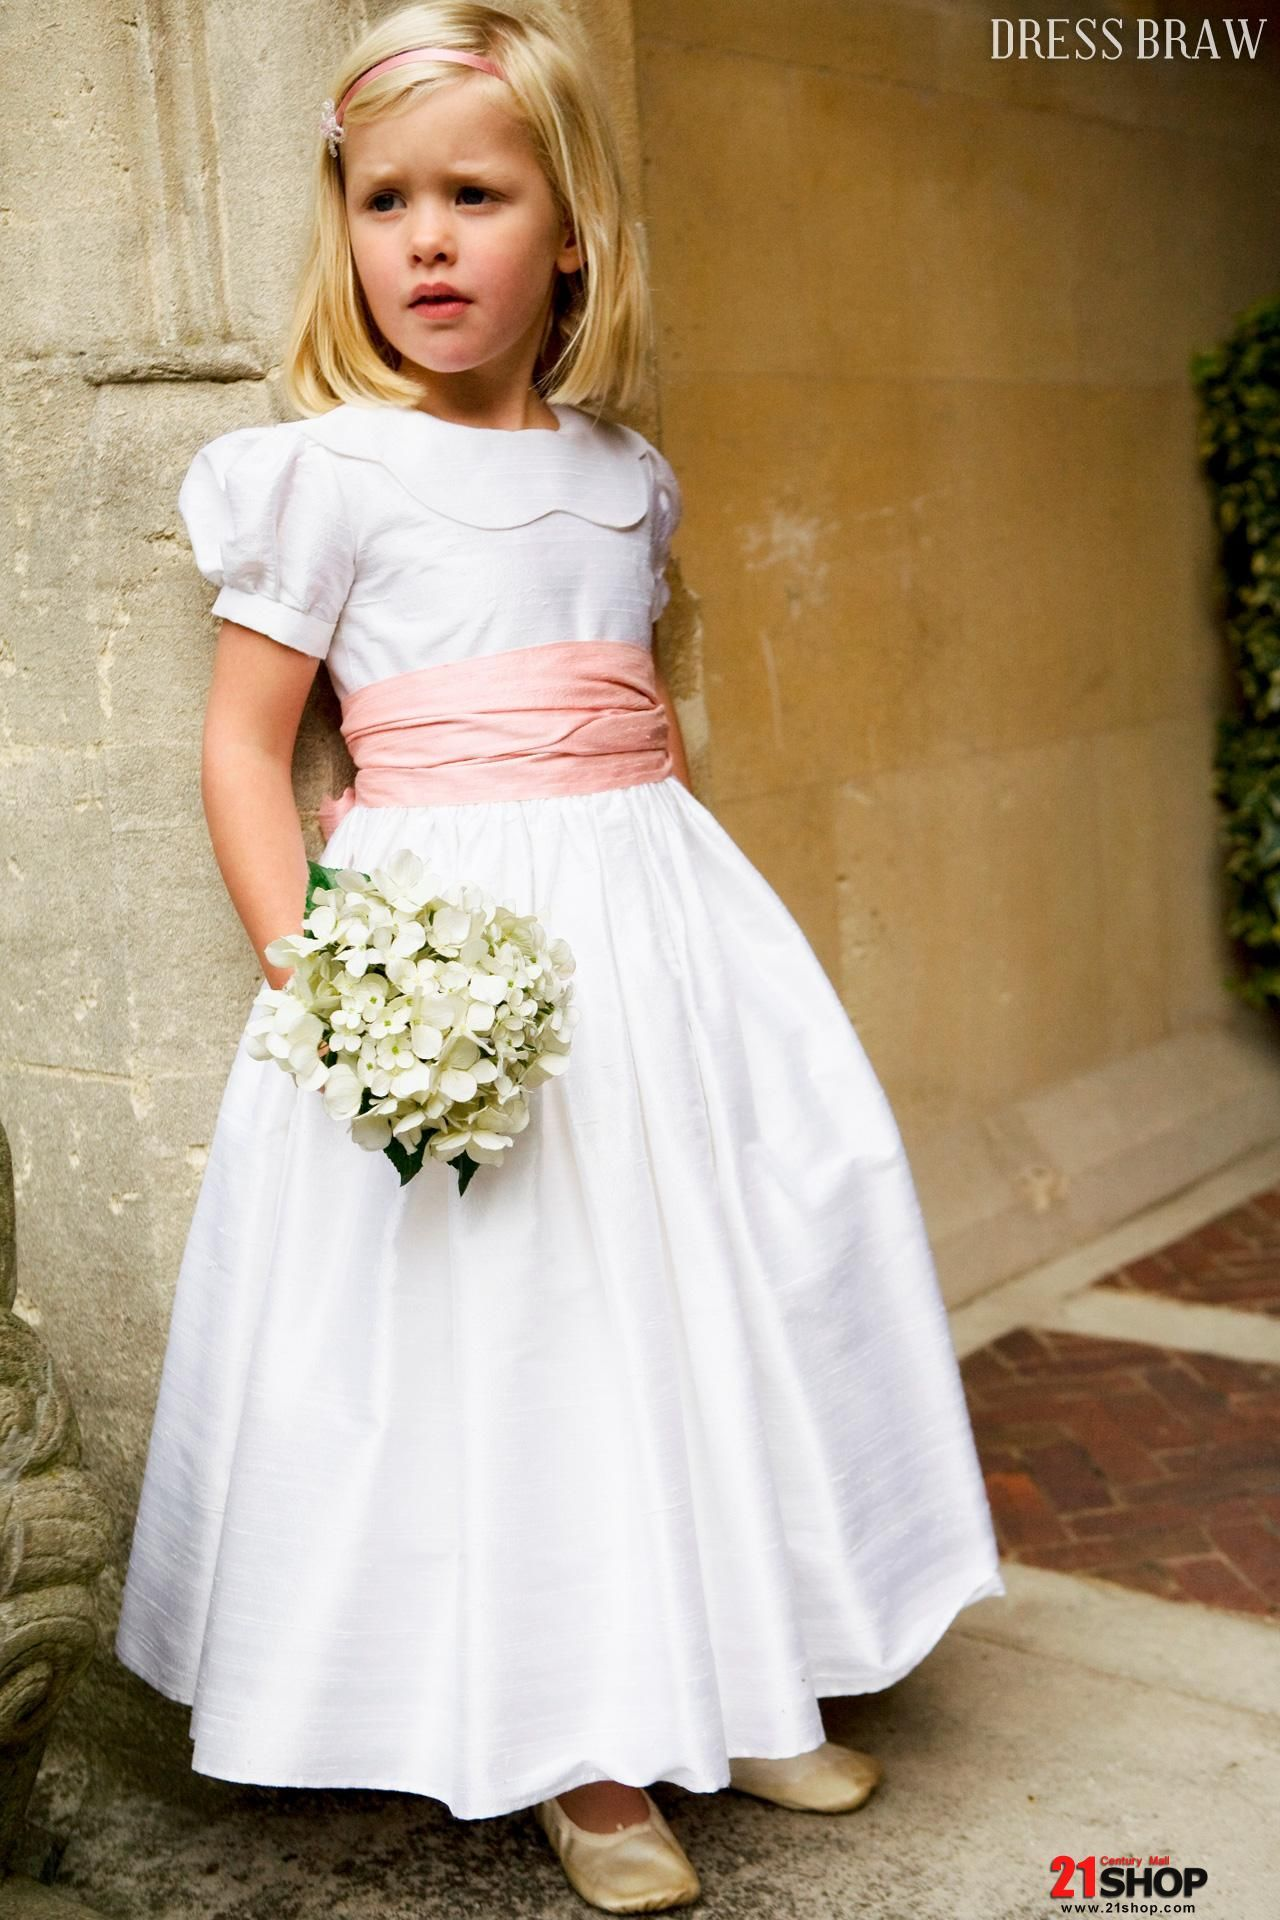 Girls wedding dress  Flower Girl dresses Cause kids are cute  Rama vs Tilly Theme